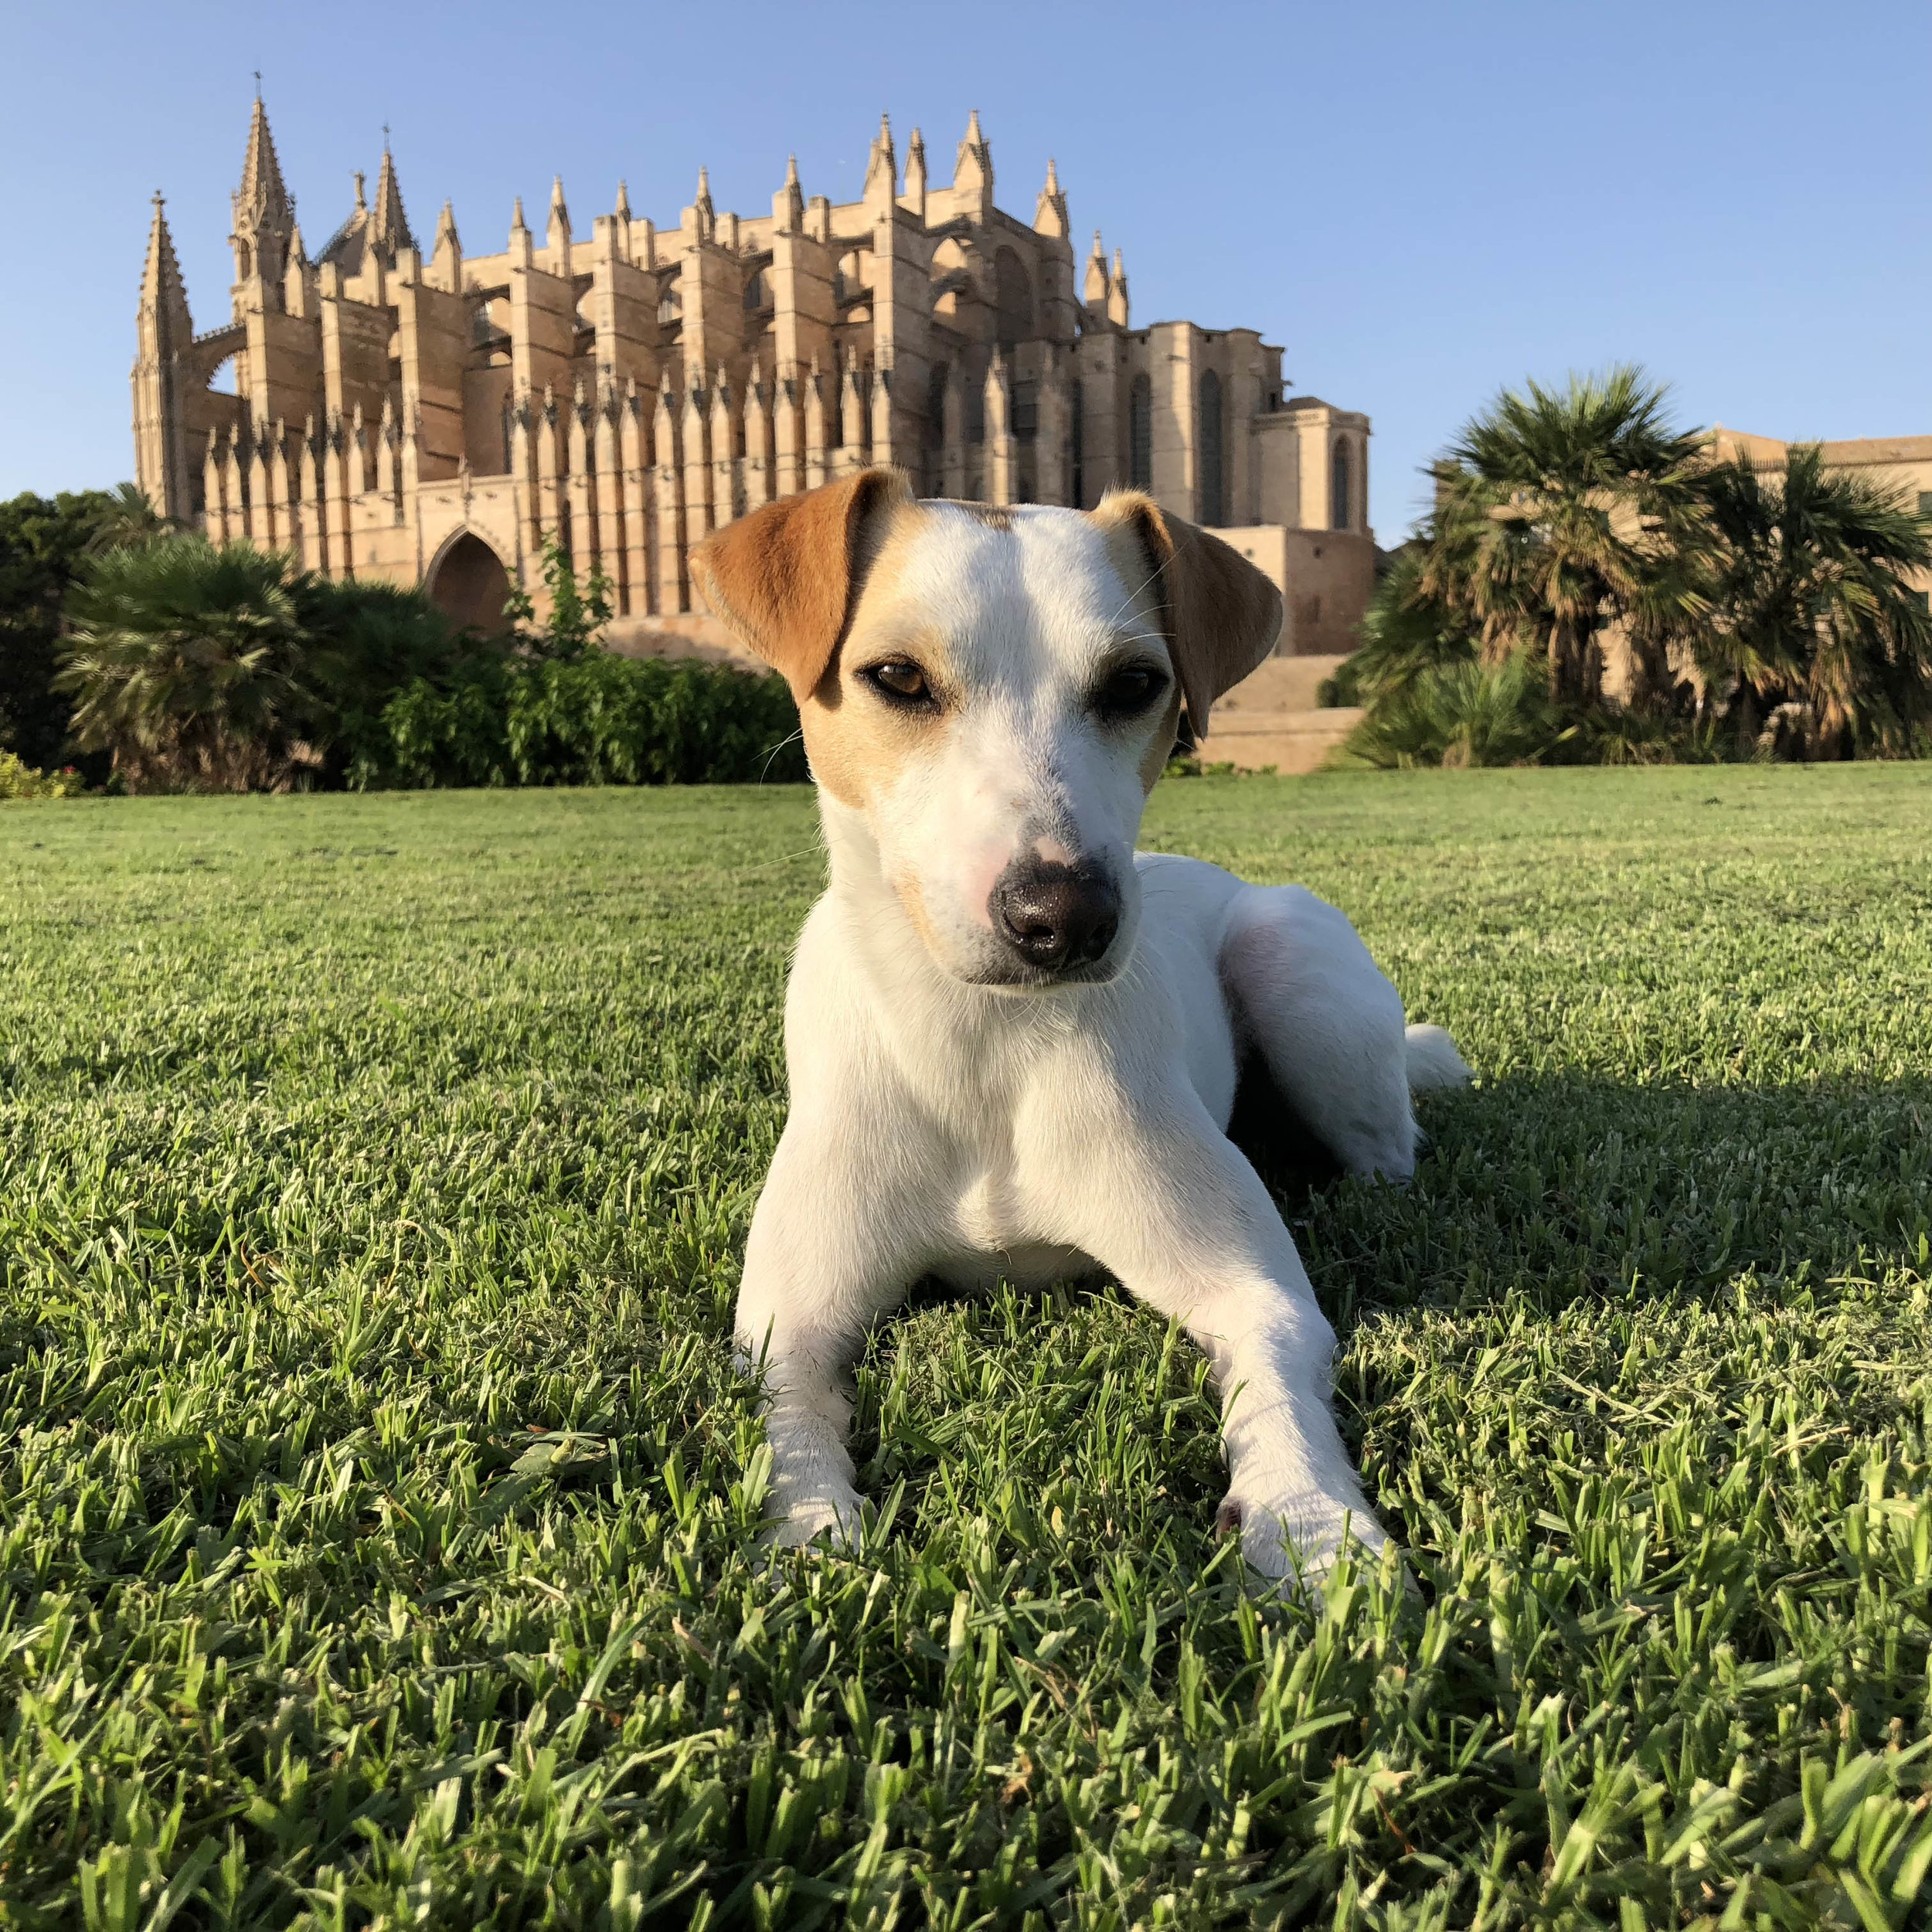 In front of the Palma Cathedral.